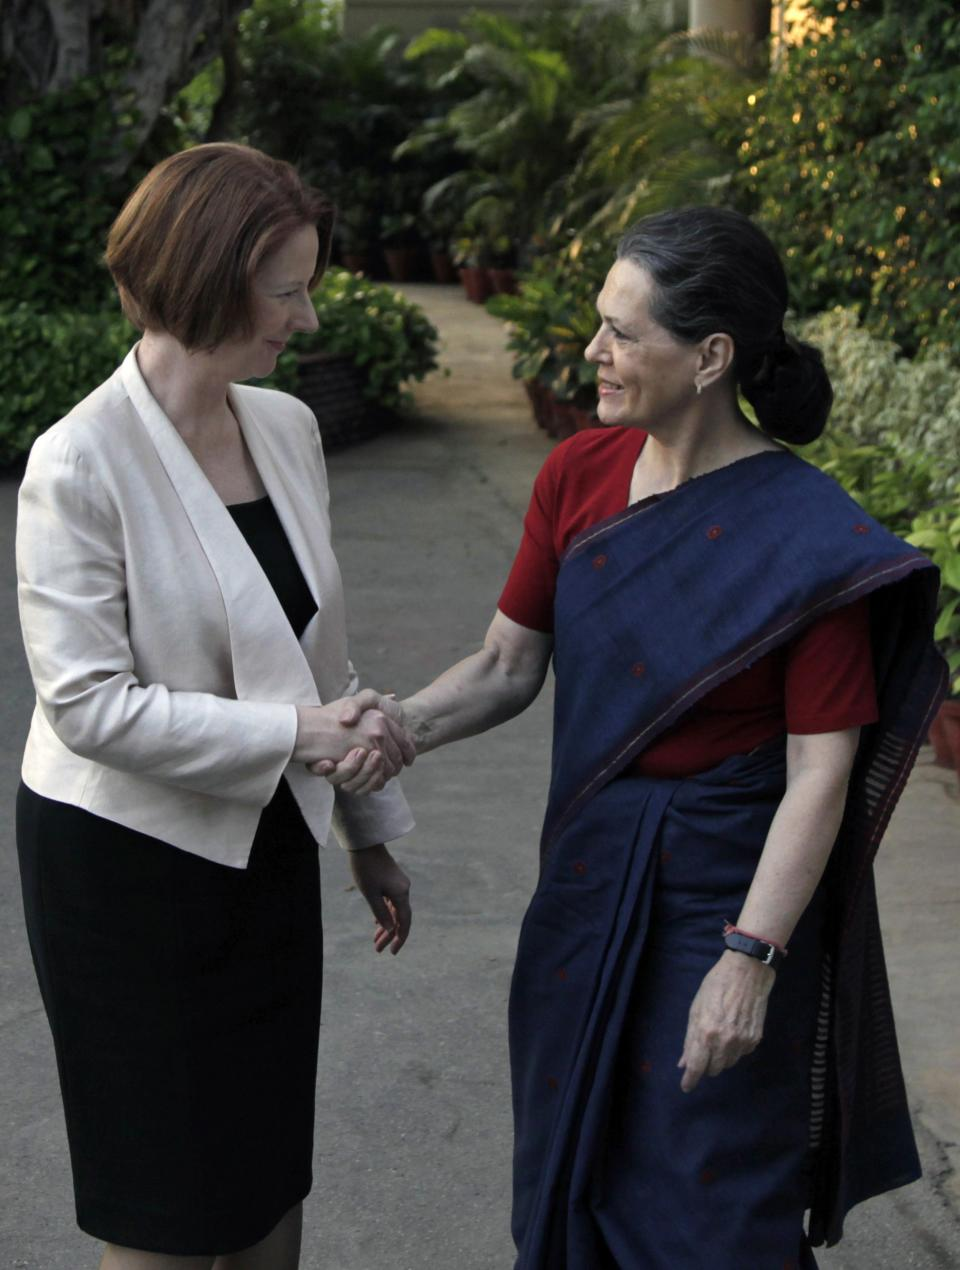 Australian Prime Minister Julia Gillard, left, shakes hands with India's Congress Party president Sonia Gandhi, at the latter's residence before a meeting in New Delhi, India, Wednesday, Oct. 17, 2012. India and Australia began talks Wednesday to strengthen economic and strategic ties and explore cooperation in civilian nuclear energy. (AP Photo/ Mustafa Quraishi)